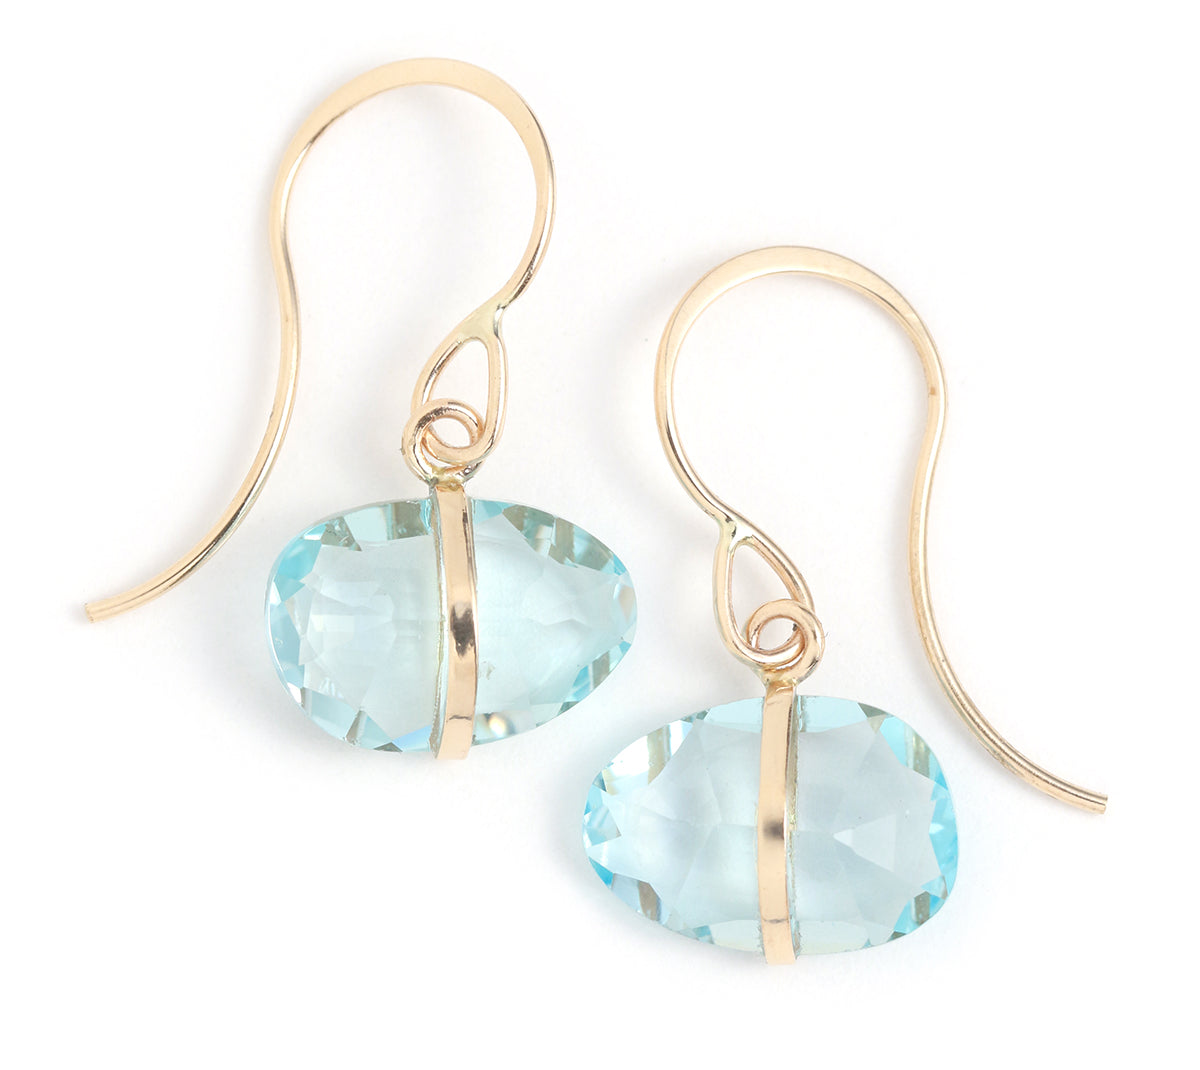 Blue Topaz Single Drop Earrings